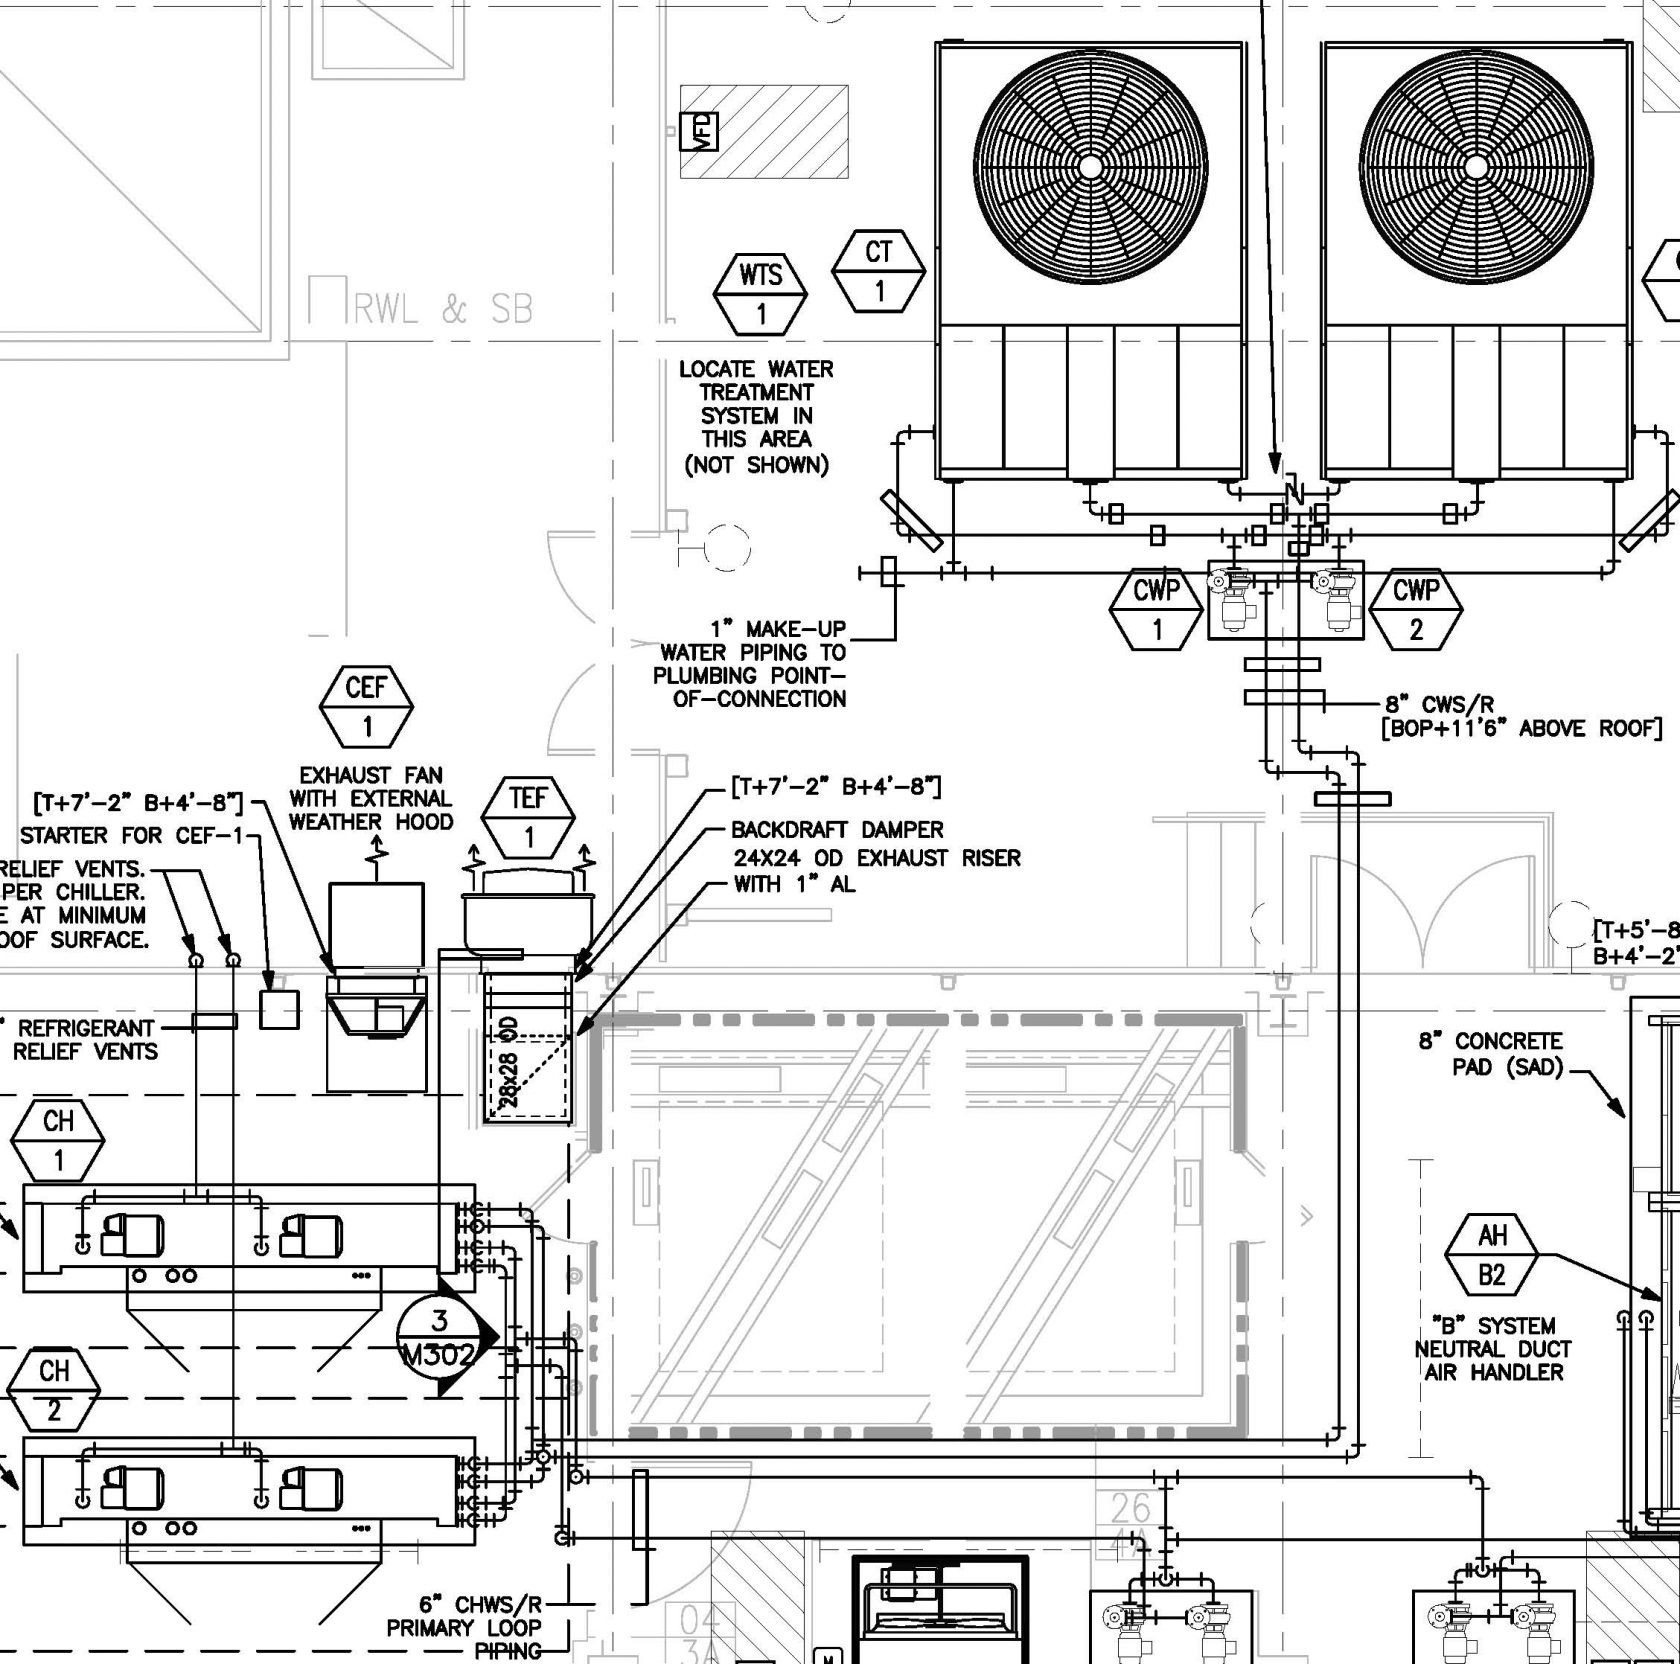 Cold Room Control Panel Wiring Diagram Split Ac Wiring Diagram Image Inspirationa Electrical Panel Diagram New Electrical Panel Wiring Diagram Awesome J